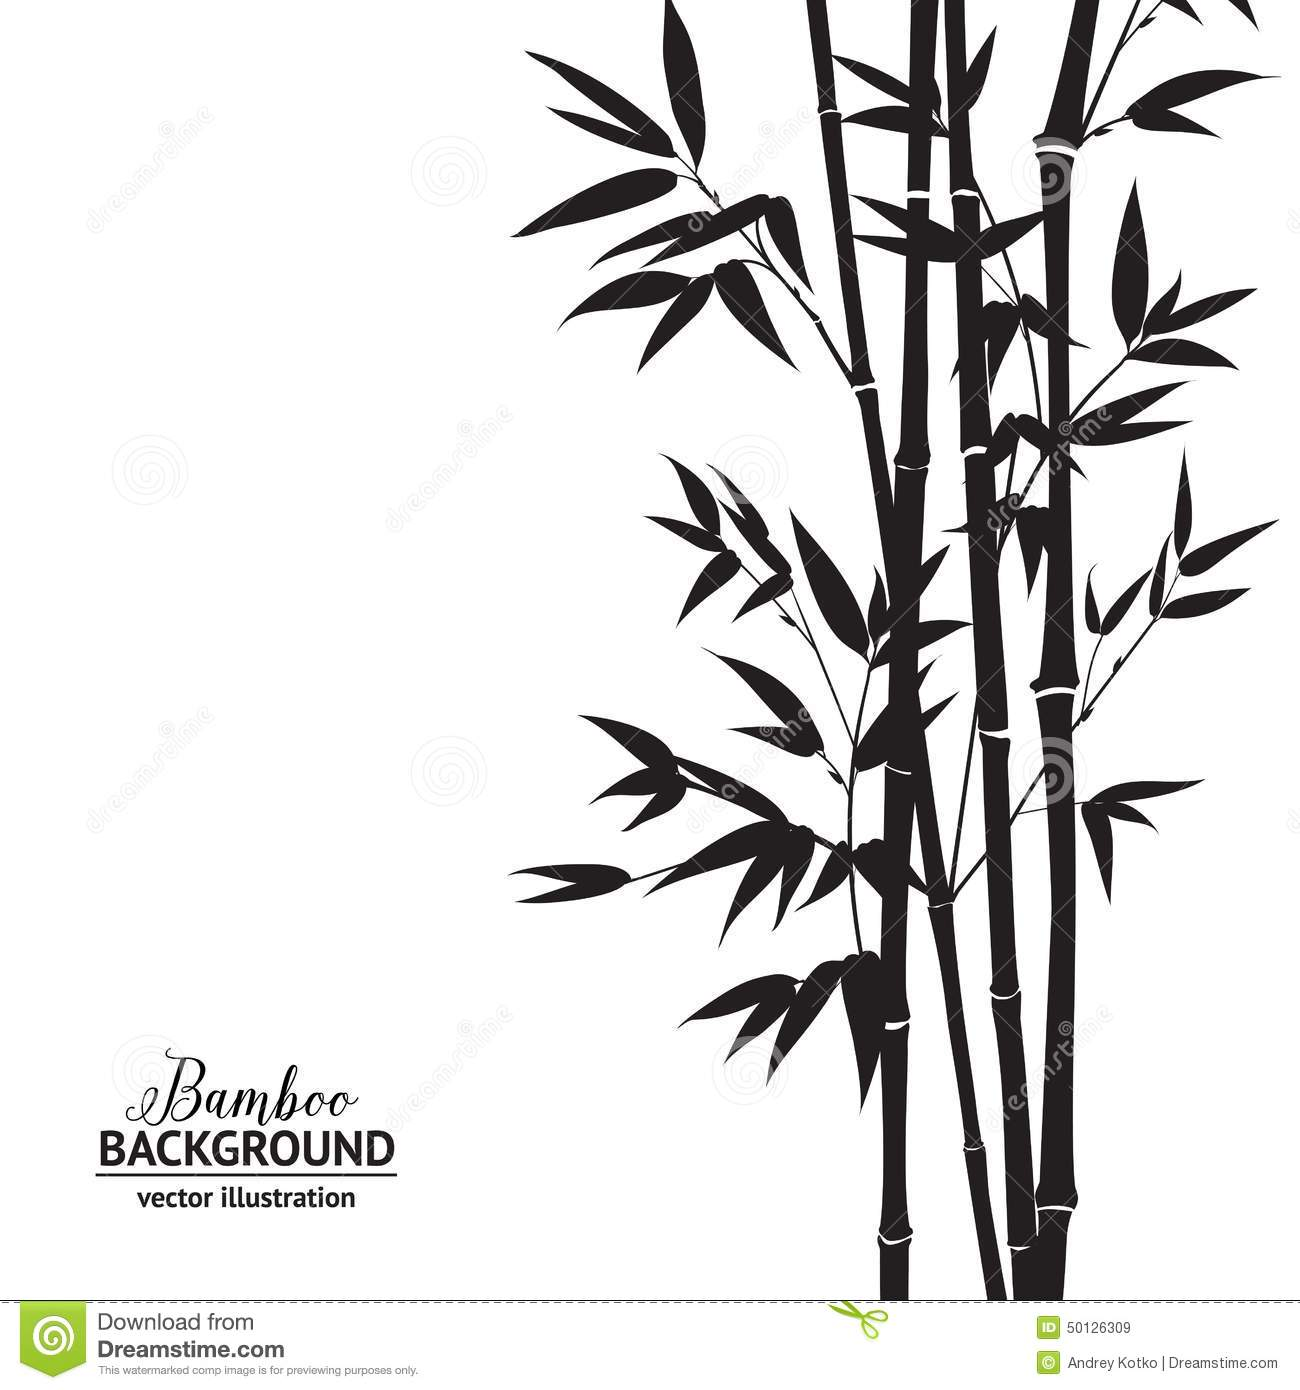 Bamboo bush stock vector. Image of bird, flyer, design ...